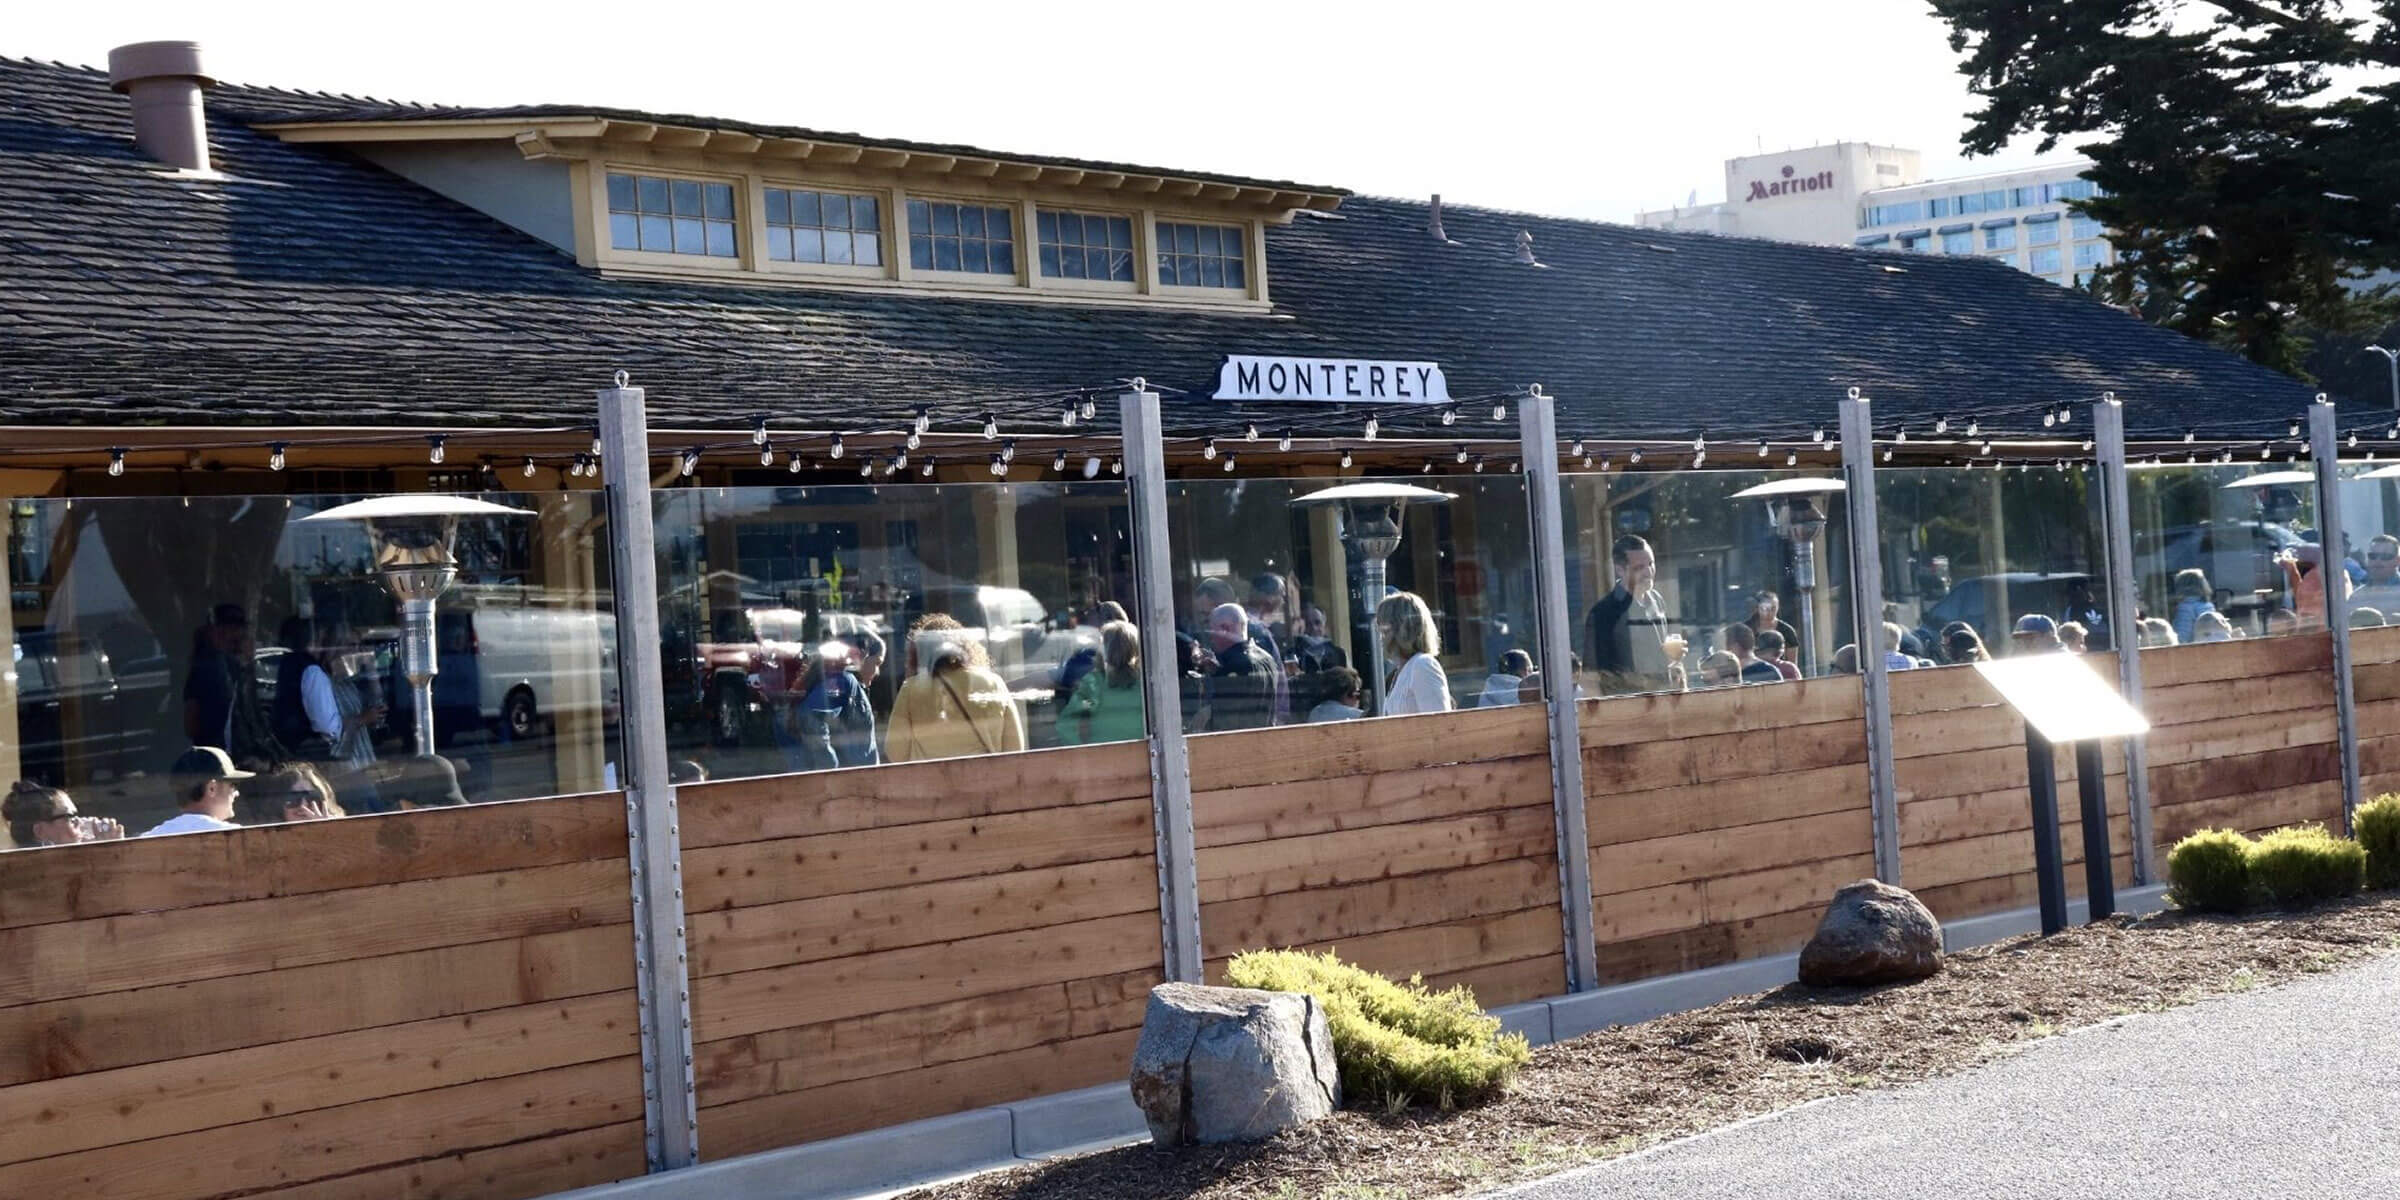 Outside the taproom at Dust Bowl Brewing Co. in Monterey, California